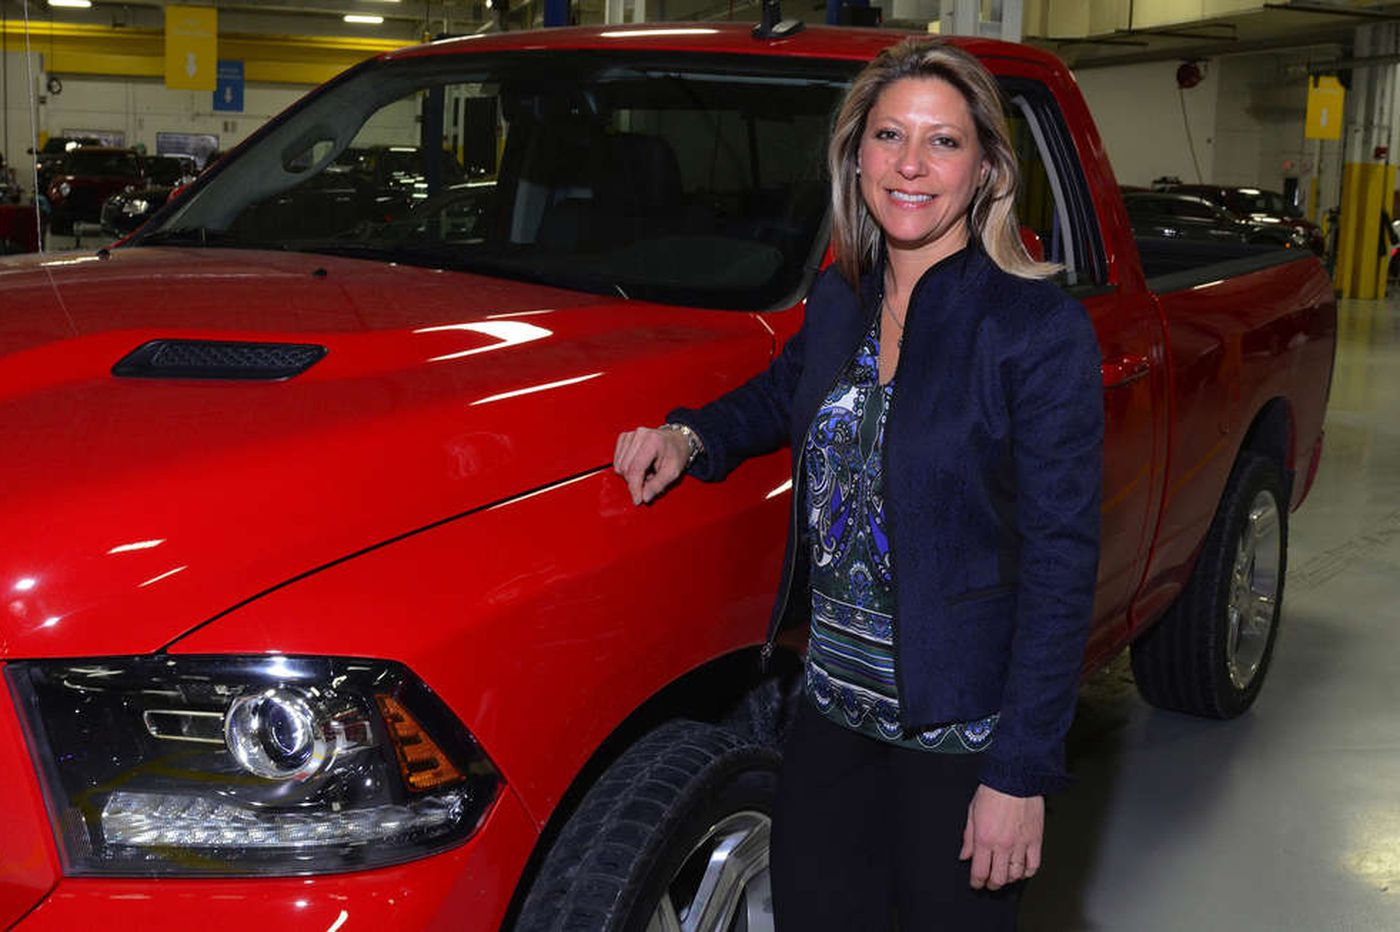 Women engineers impact auto industry